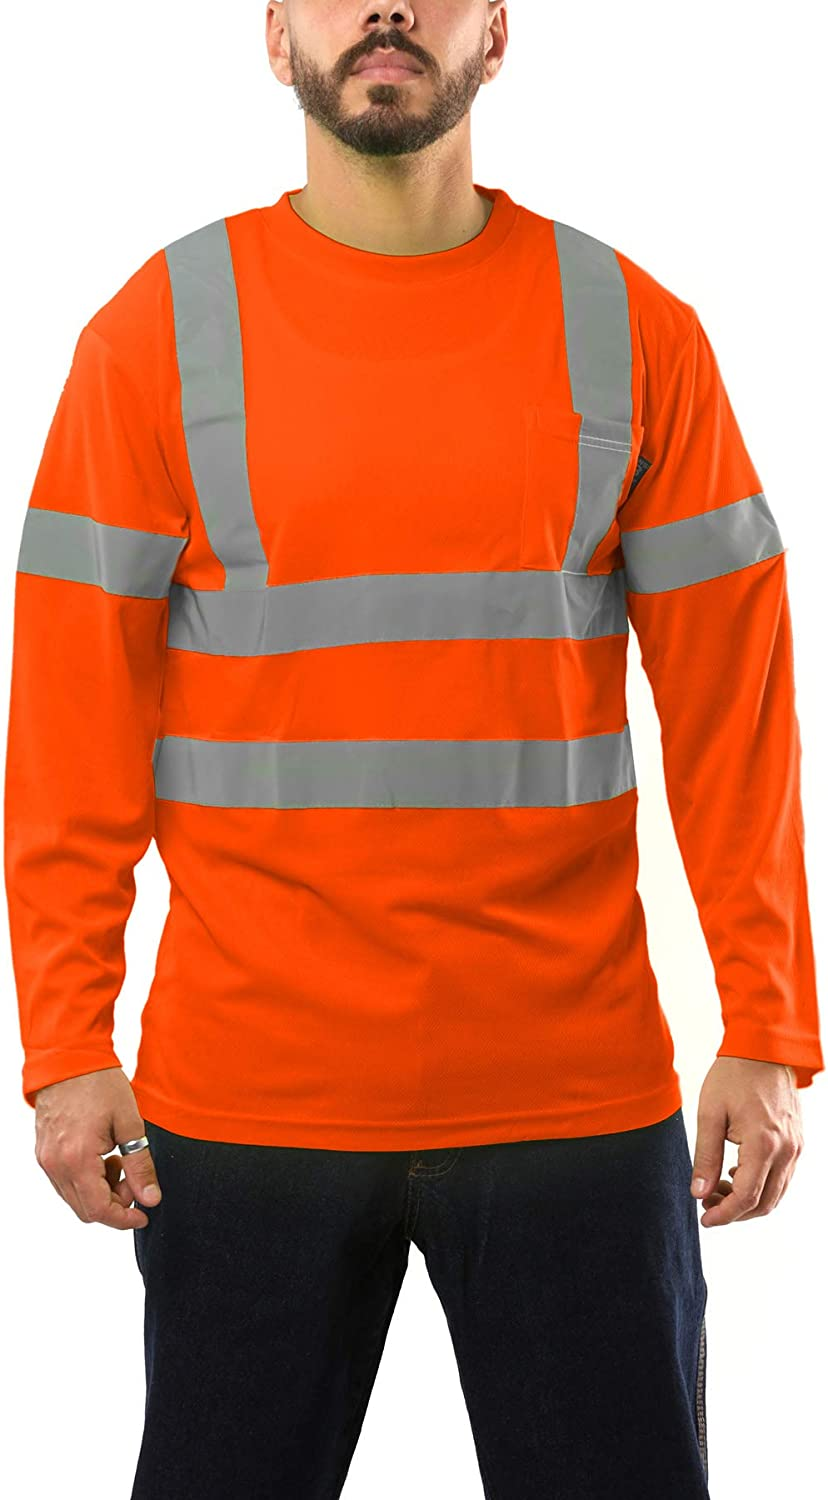 Kolossus High Visibility T Shirt Safety Seattle Mall Reflective 3 Class Super beauty product restock quality top